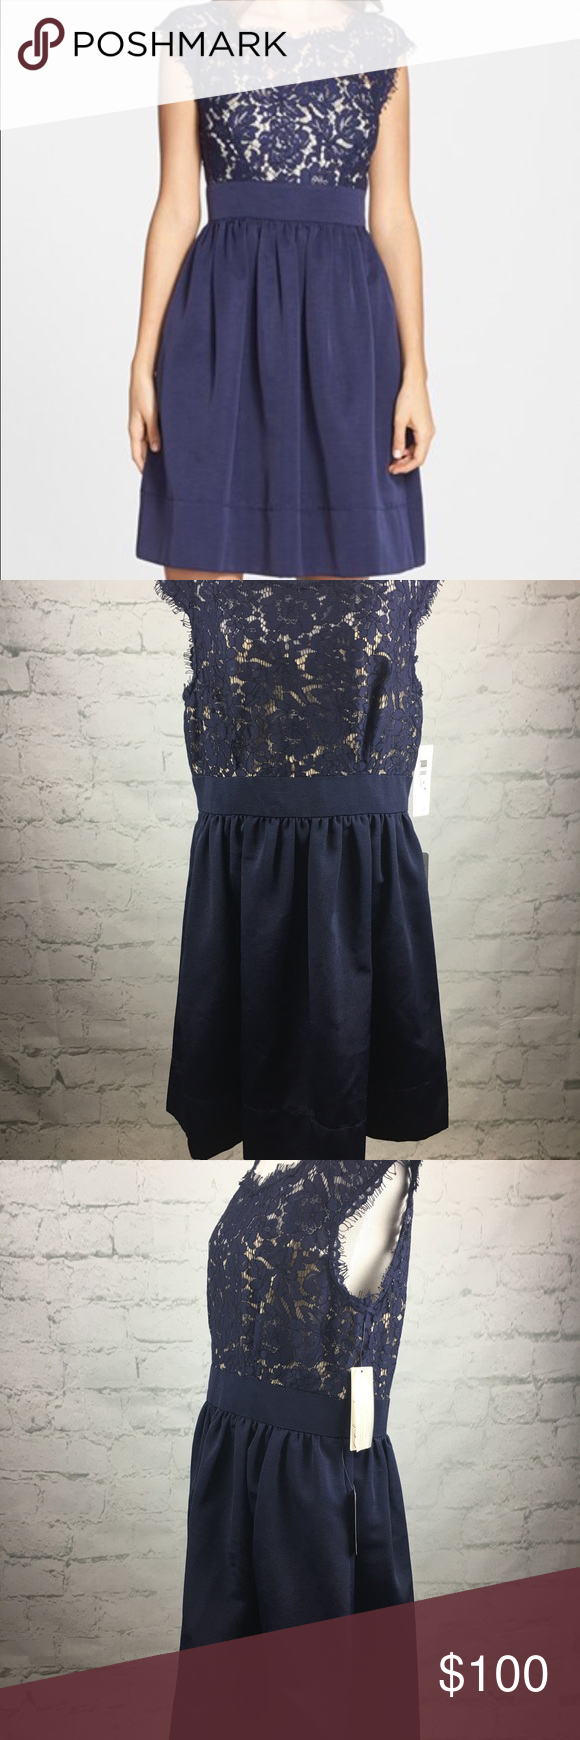 Eliza j navy lace formal dress sz nwt navy lace illusions and